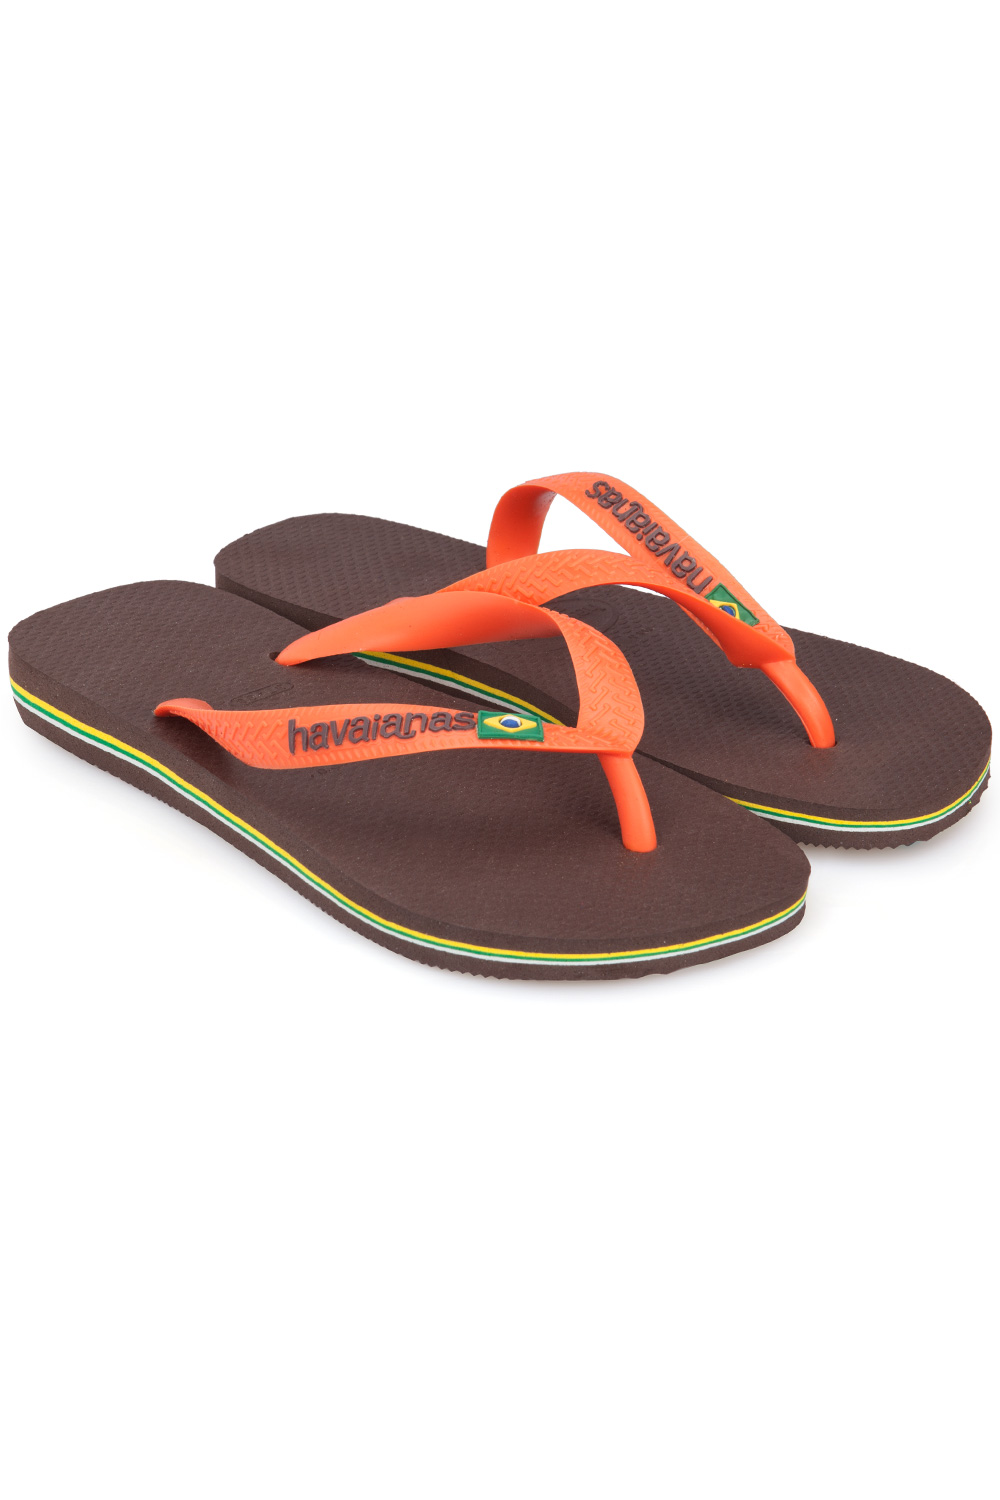 4cec7e8a702d Havaianas Brasil Dark Brown   Orange Flip Flops Koyu Kahverengi ...